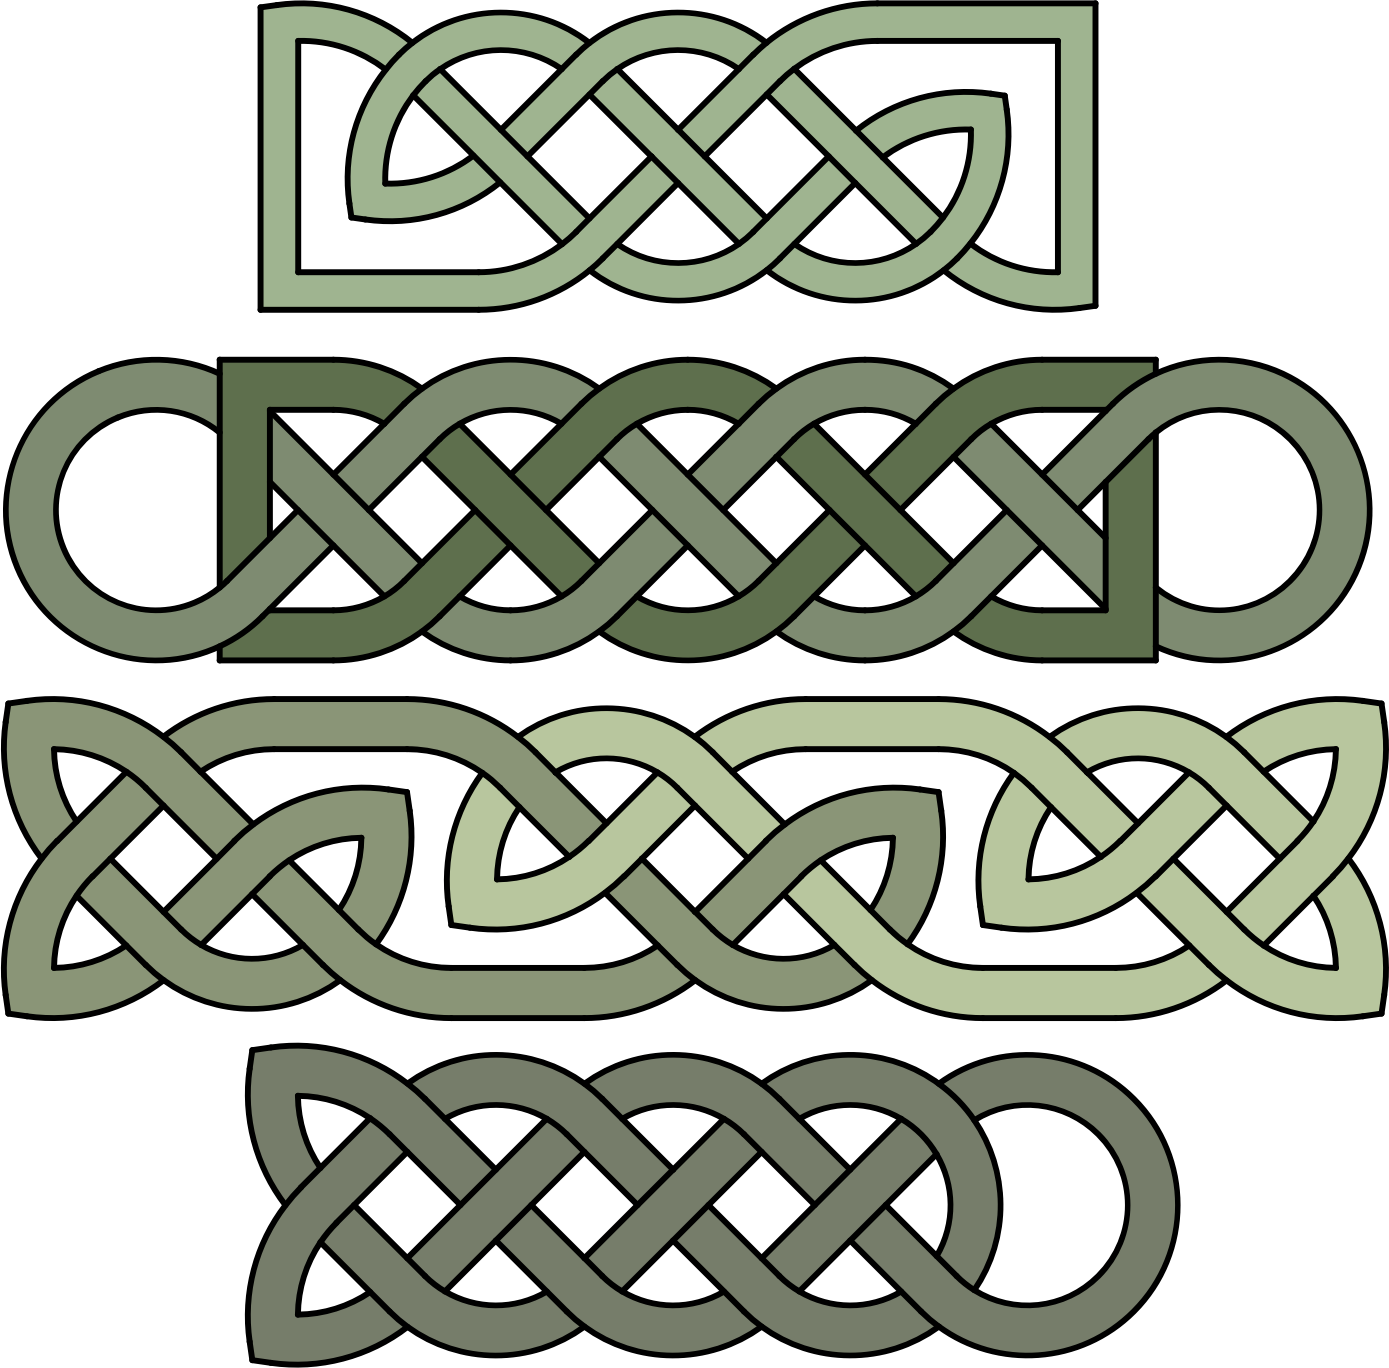 Celtic heart knot clipart download Celtic knot patterns | Projects to Try | Pinterest | Celtic knots ... download